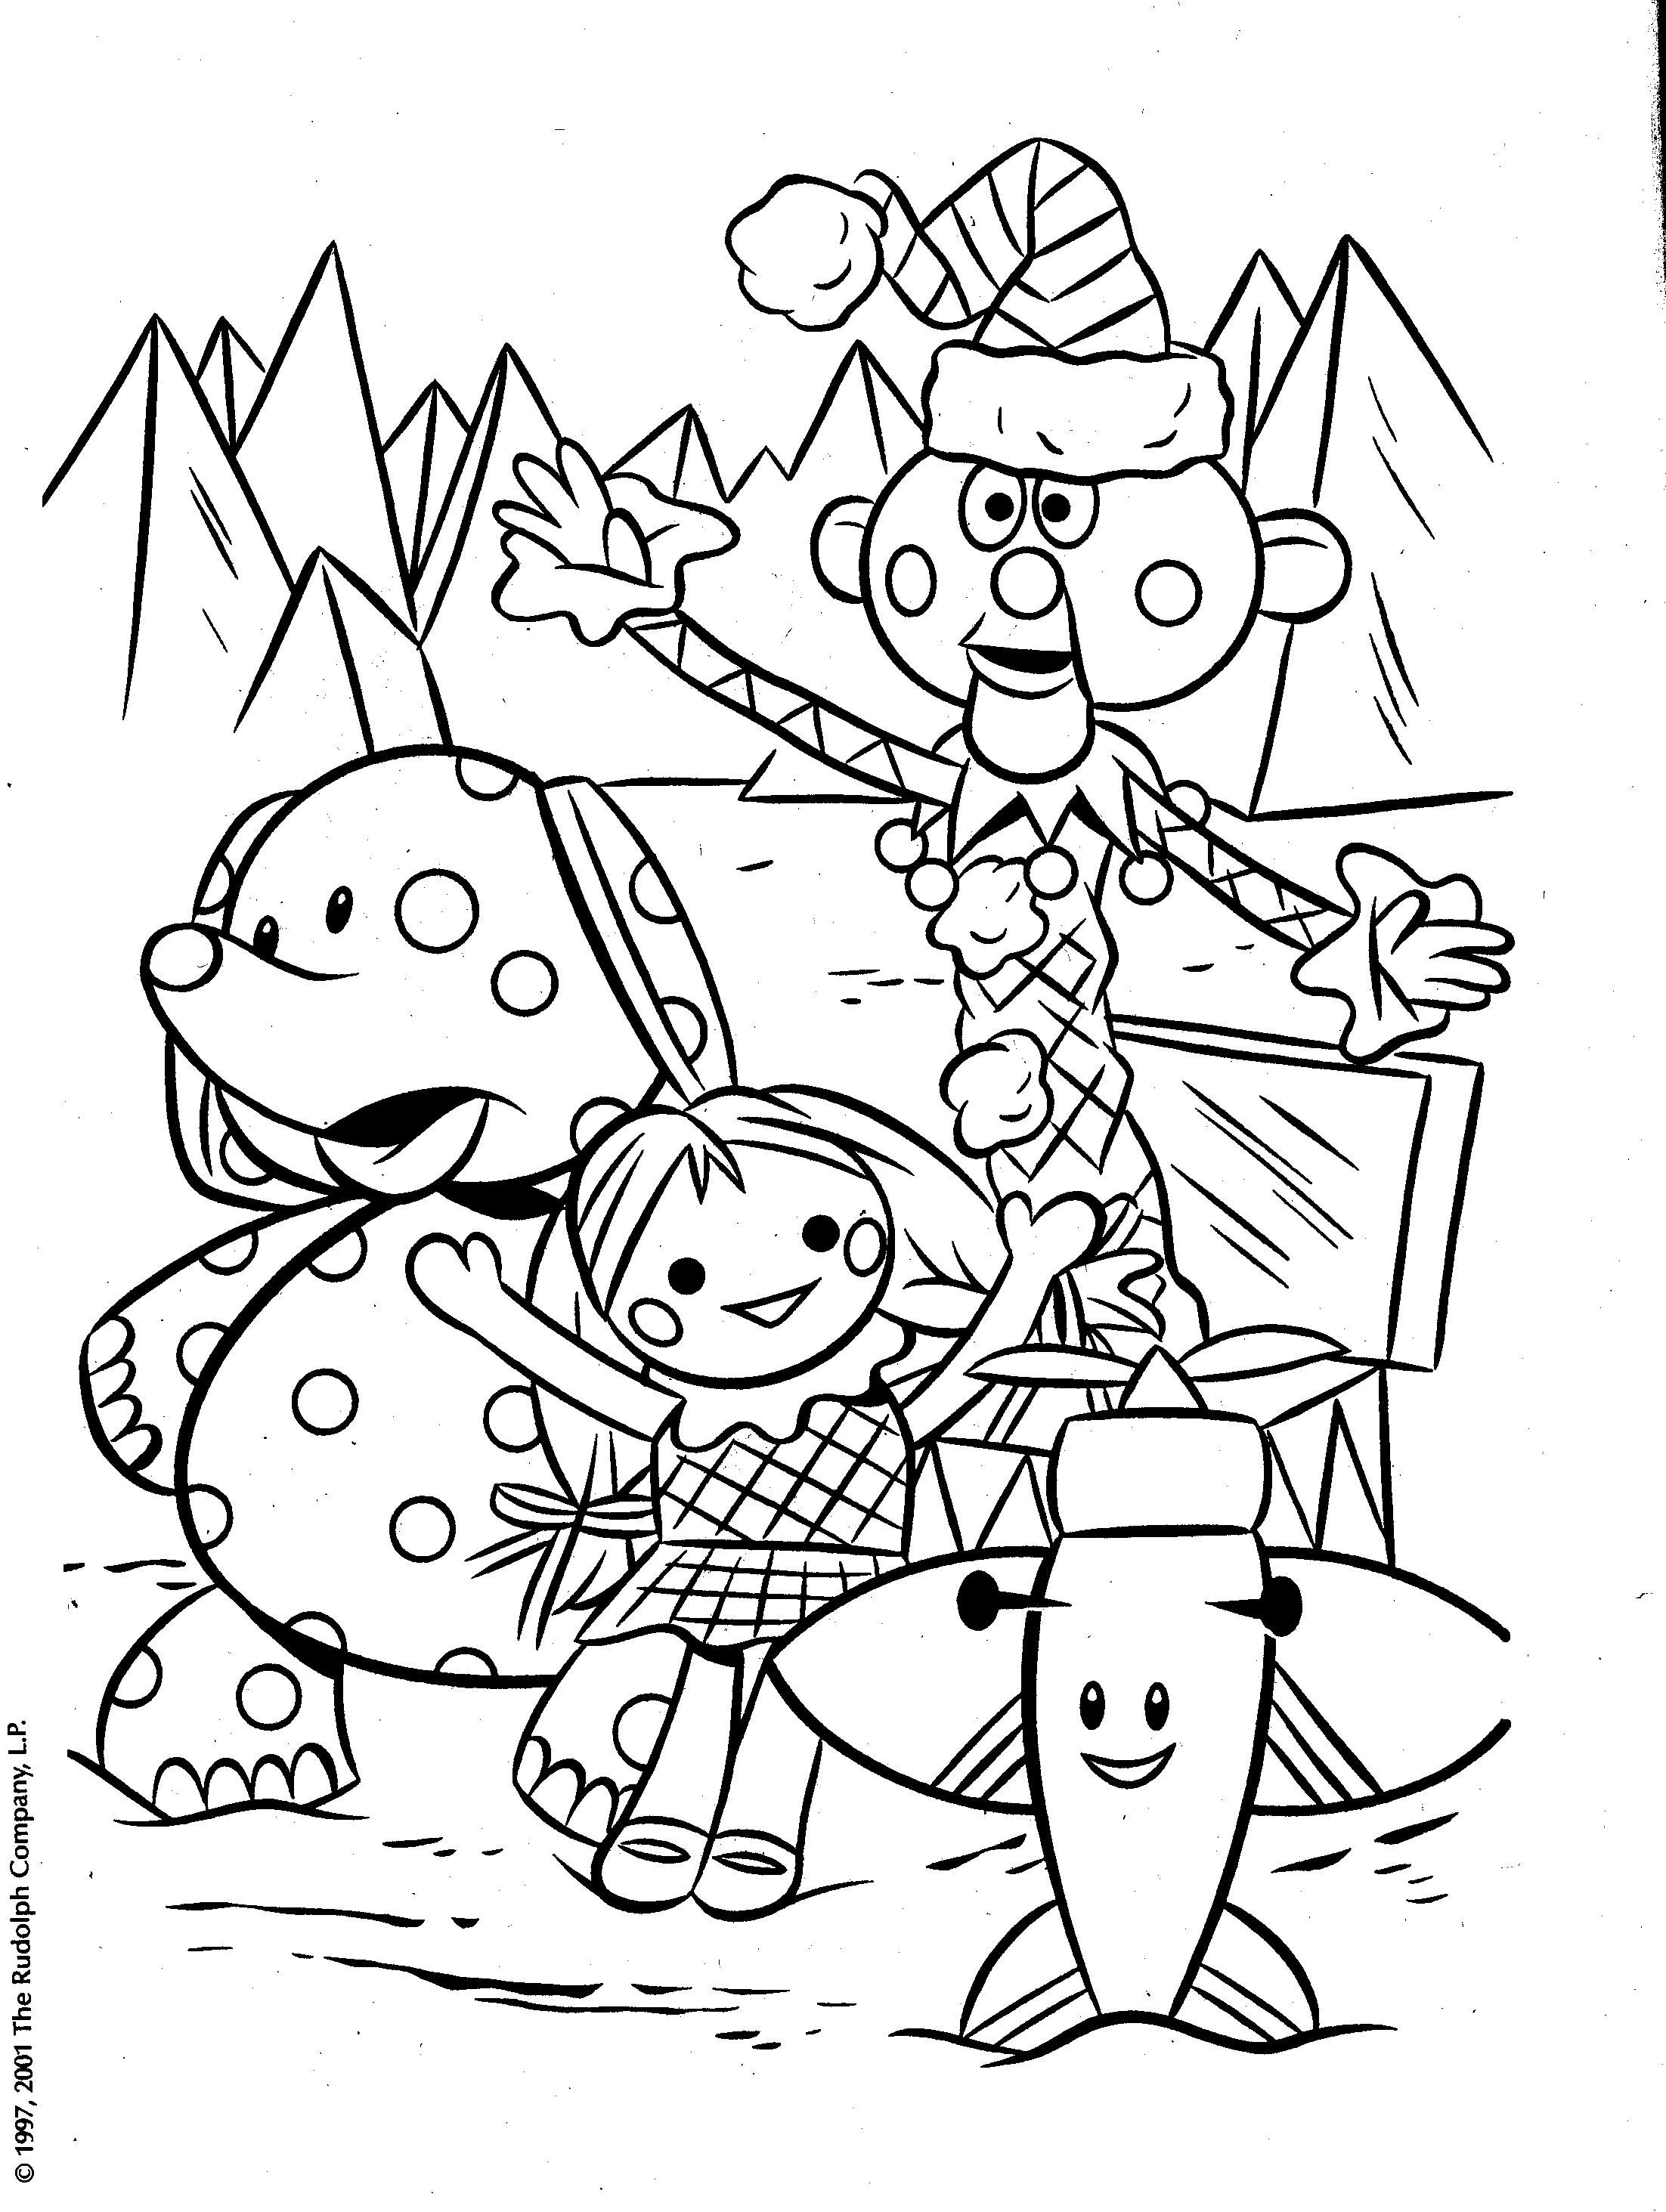 Printable Christmas Coloring Pages Reindeer With Rudolph Misfit Toys Grammy Picks Pinterest